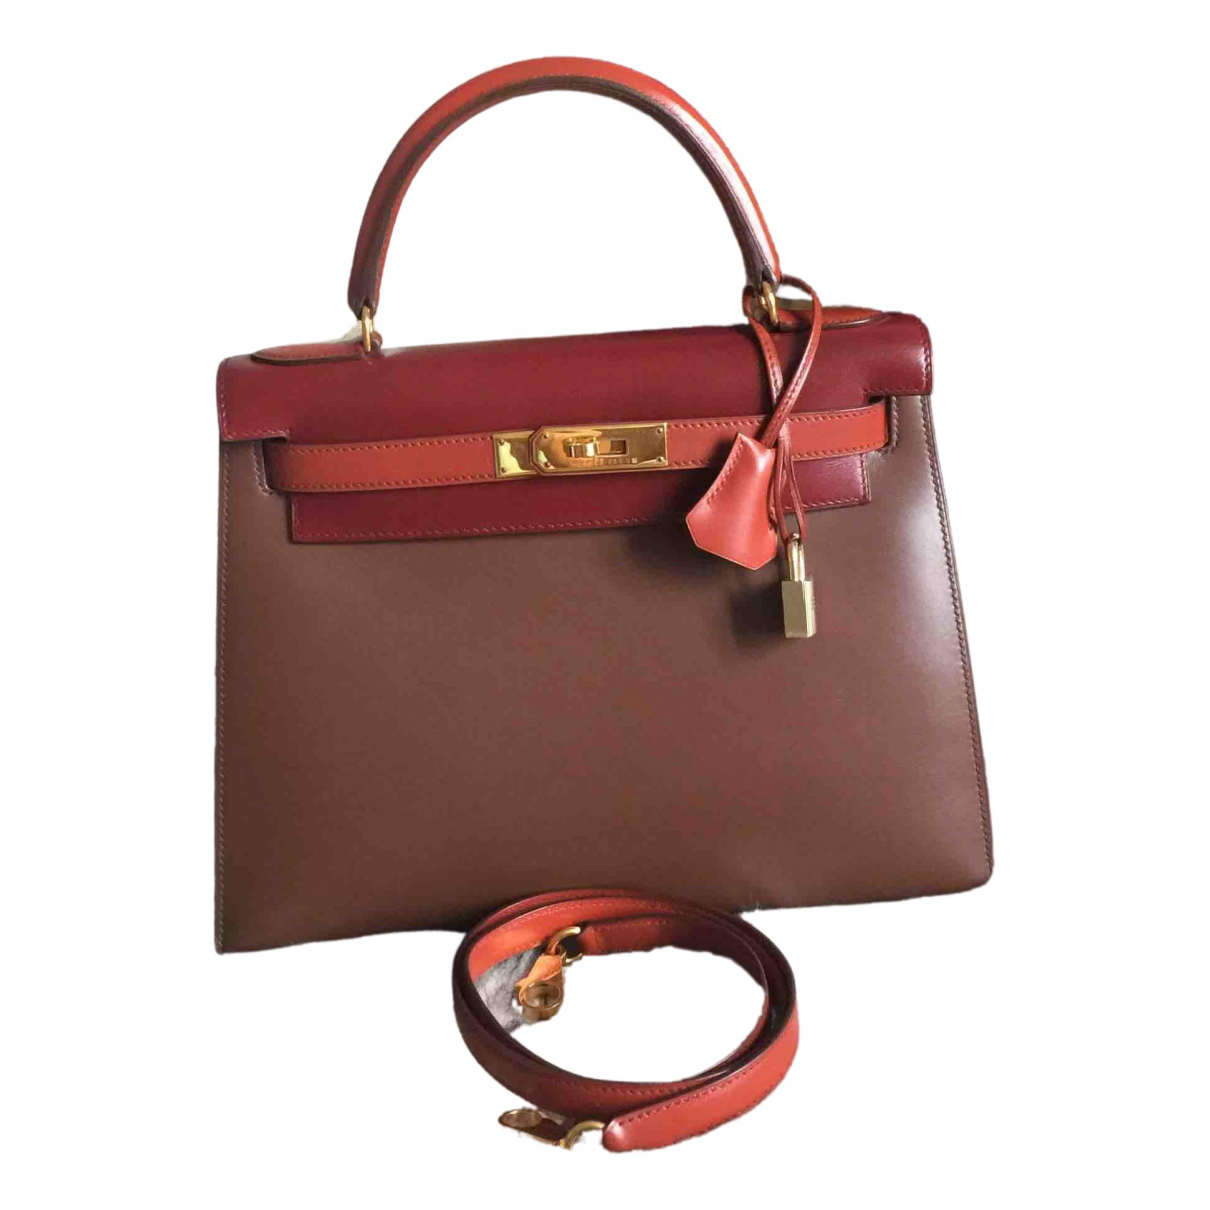 Hermès Kelly 28 Burgundy Leather handbag for Women \N